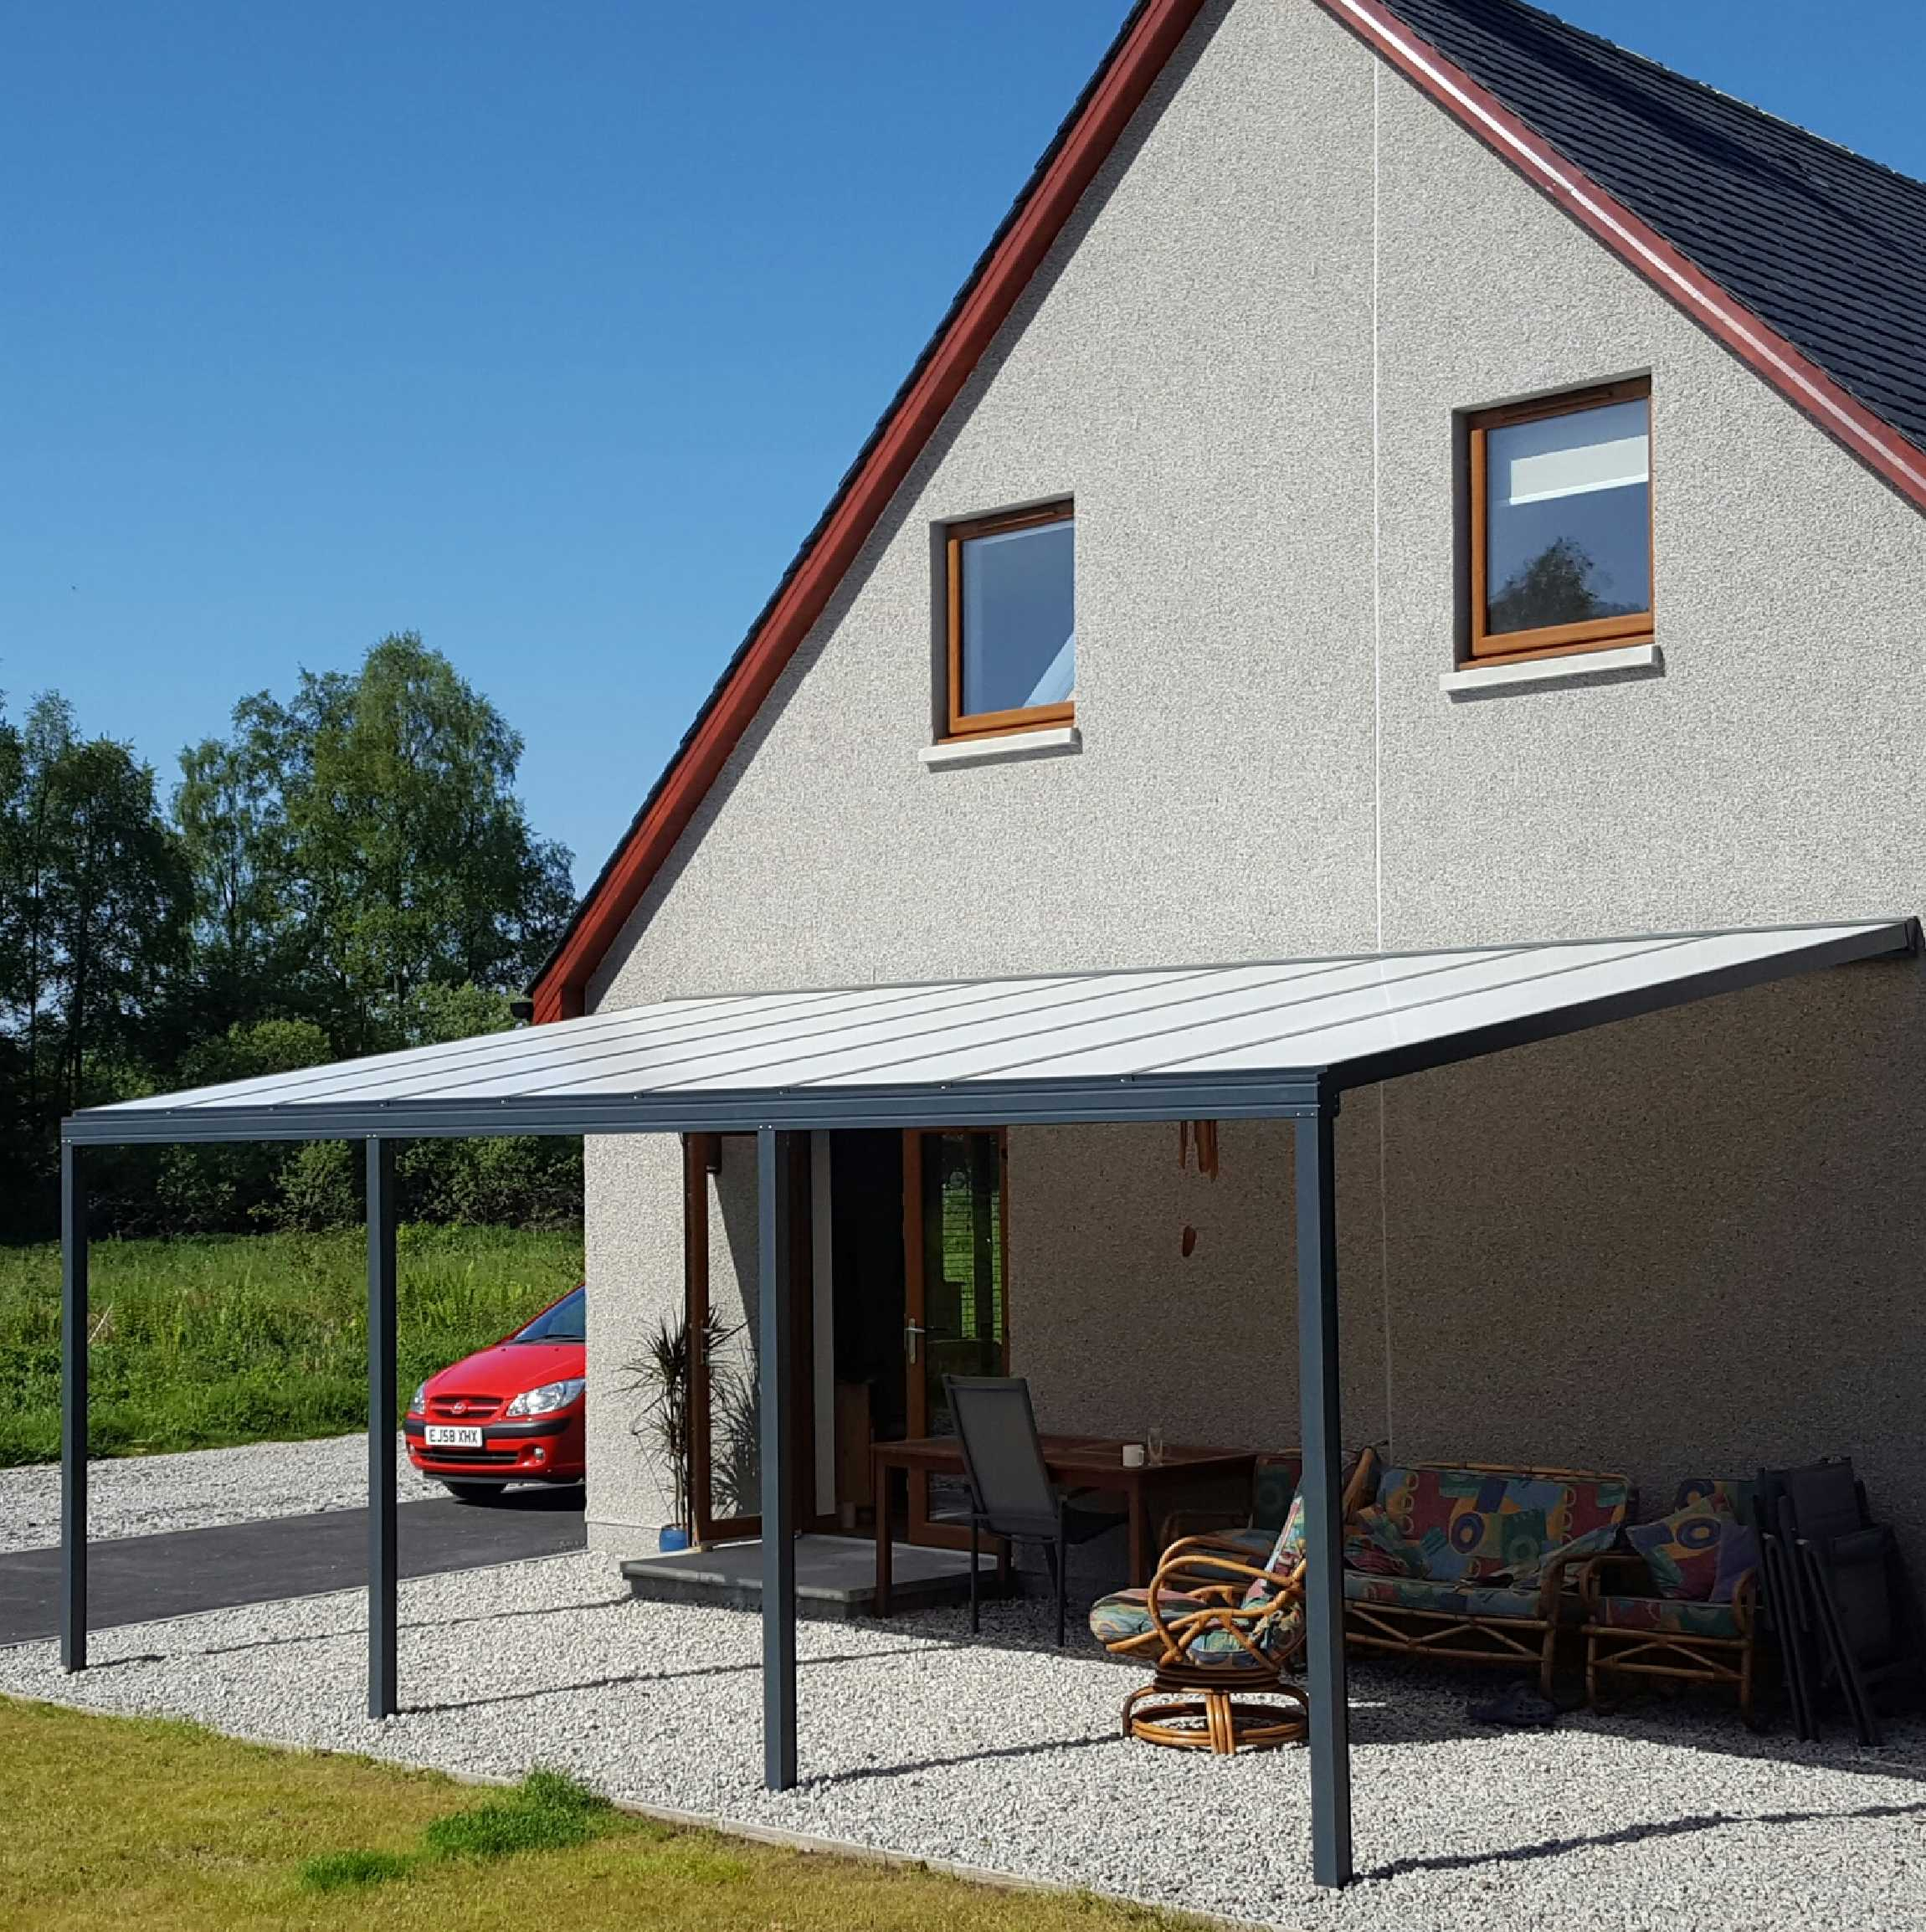 Great selection of Omega Smart Lean-To Canopy, Anthracite Grey, 16mm Polycarbonate Glazing - 11.4m (W) x 3.5m (P), (5) Supporting Posts